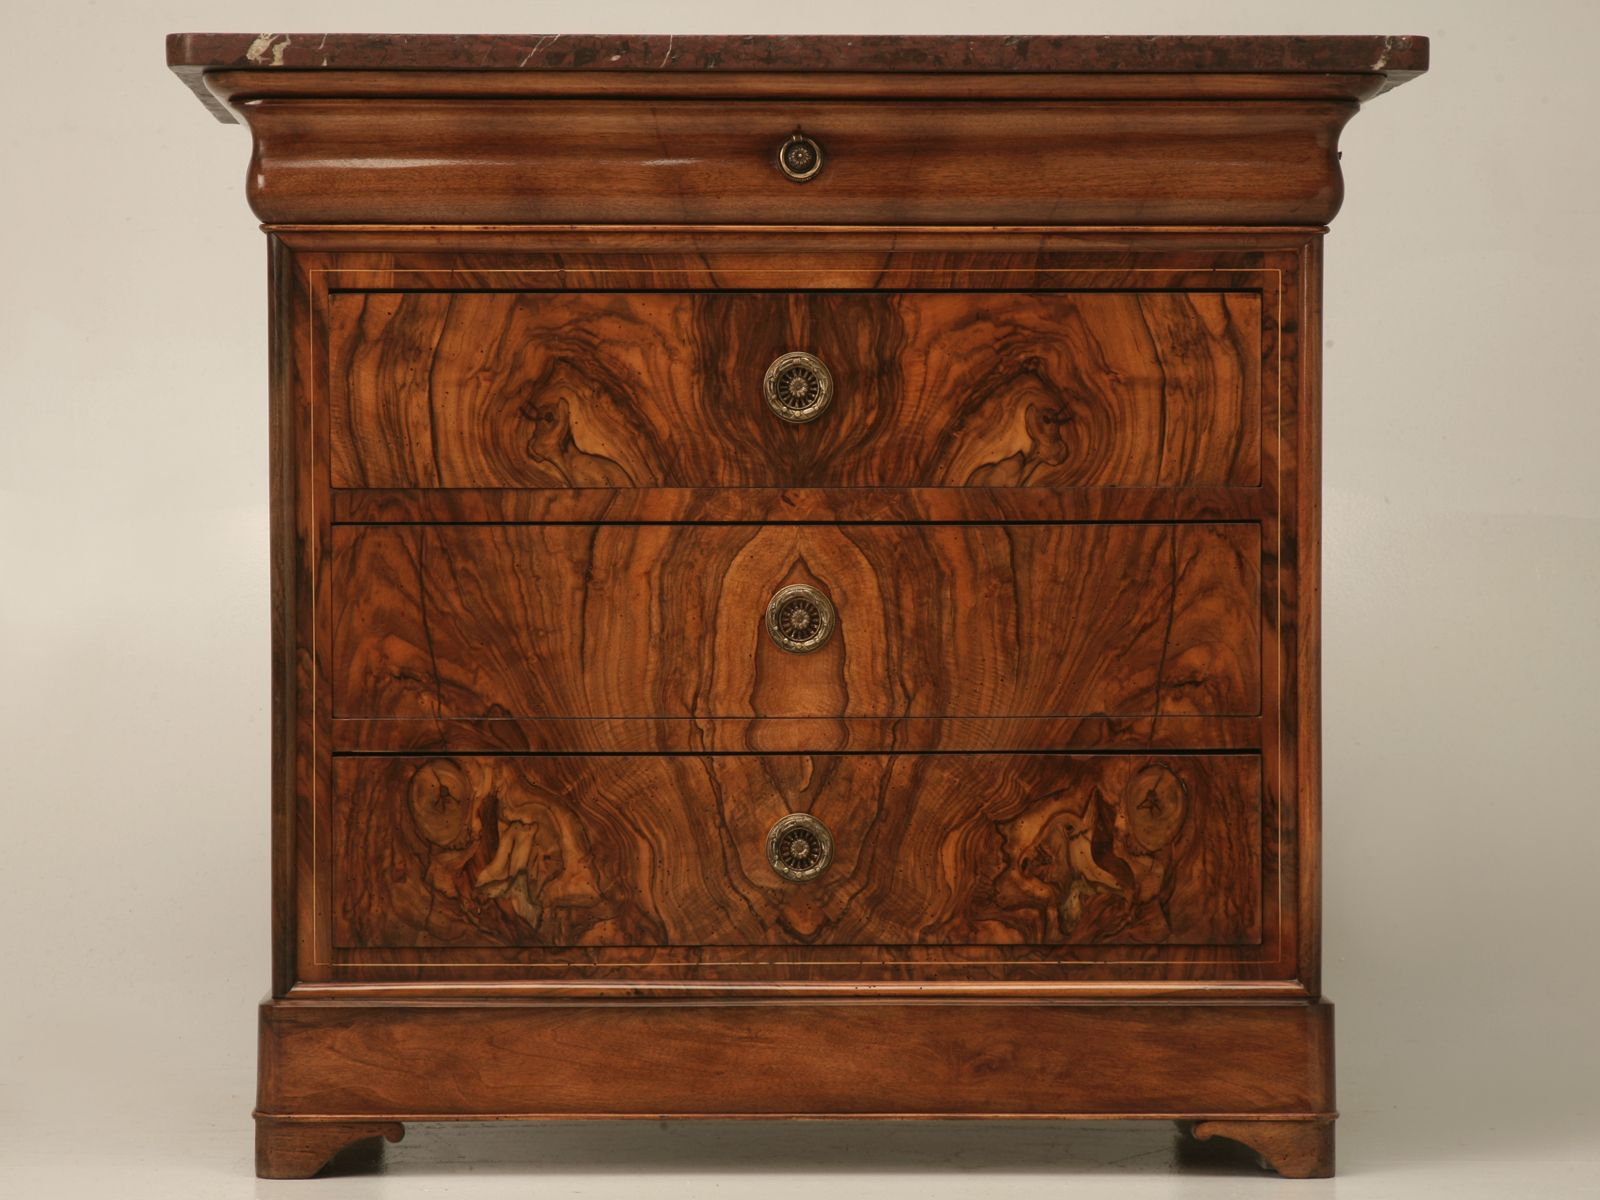 Burled walnut furniture